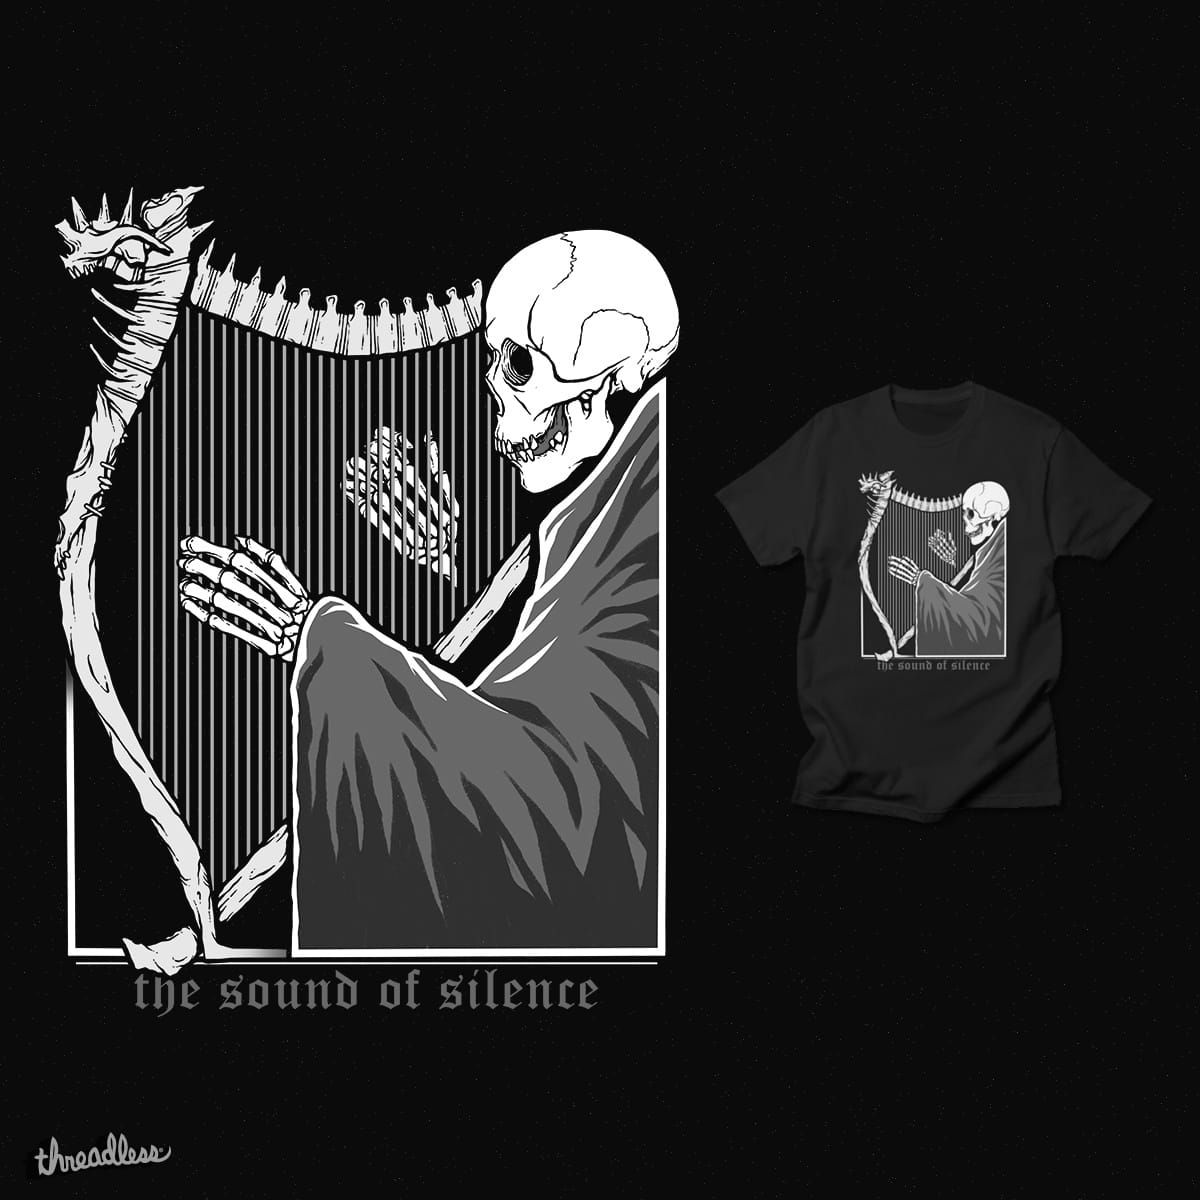 The Sound of Silence by Deniart on Threadless